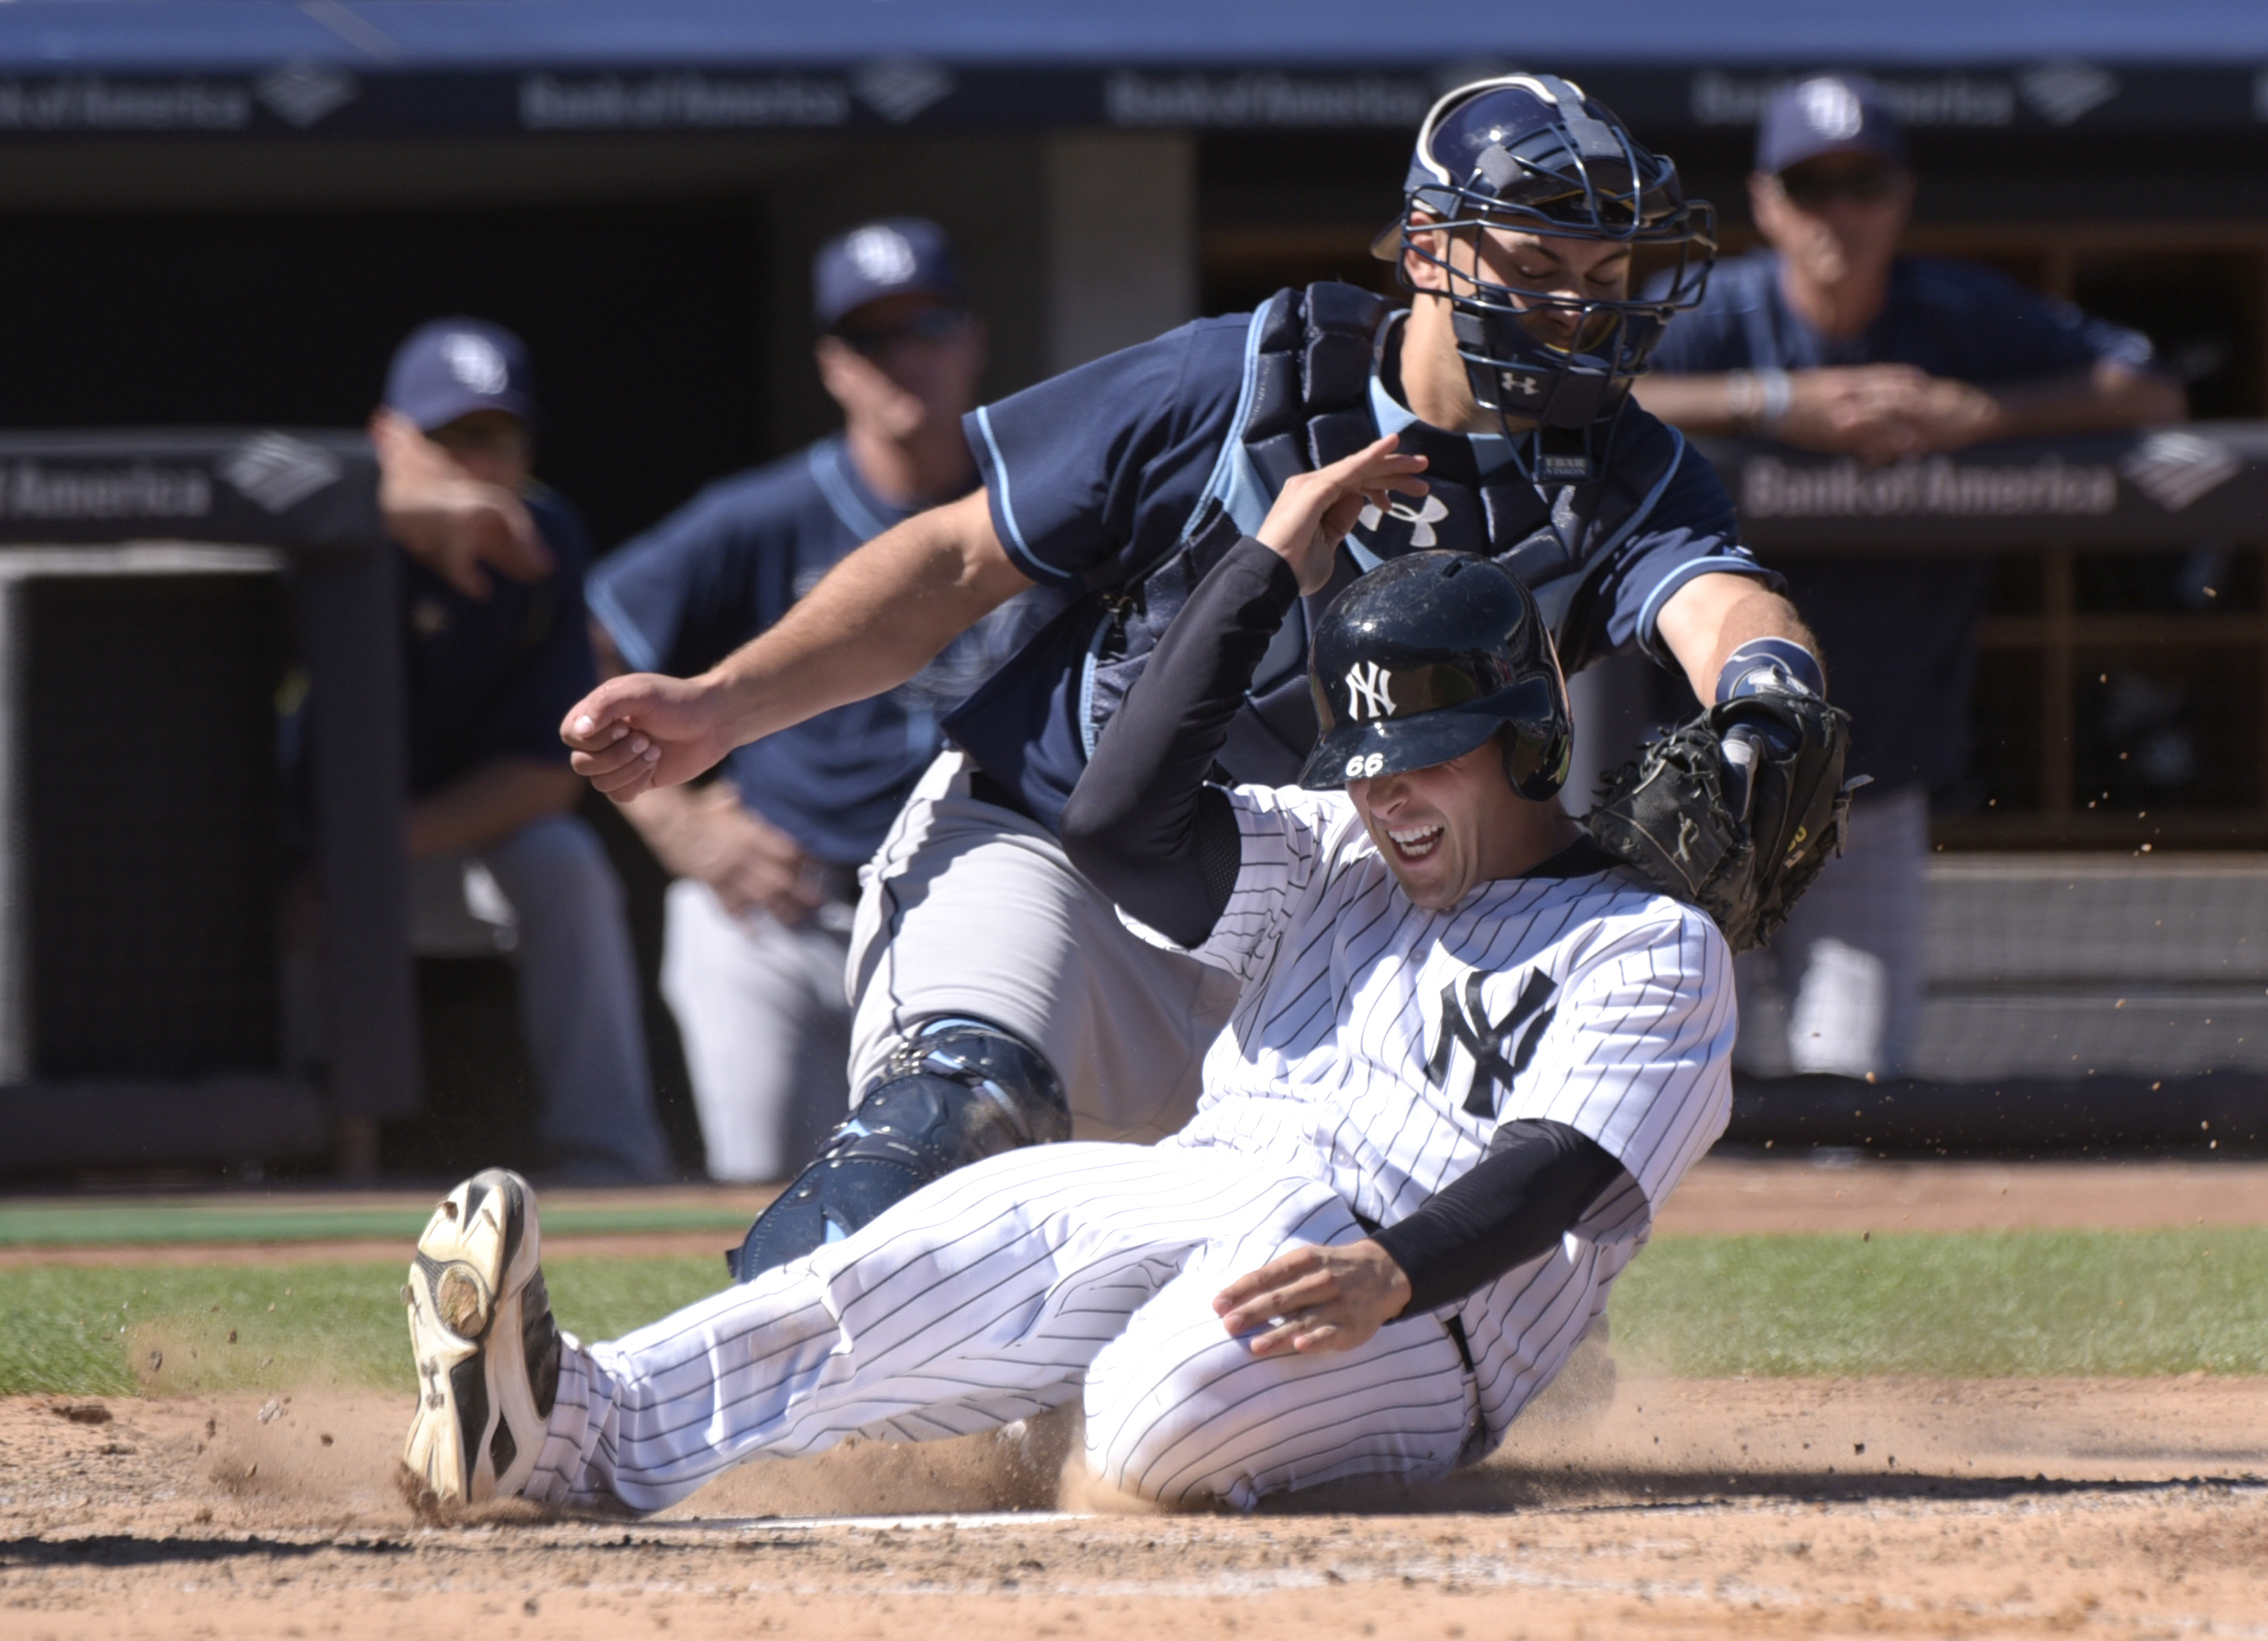 New York Yankees' John Ryan Murphy (66) scores on a double by Didi Gregorius ahead of the tag by Tampa Bay Rays catcher Luke Maile during the fifth inning of a baseball game Saturday, Sept. 5, 2015, at Yankee Stadium in New York. (AP Photo/Bill Kostroun)